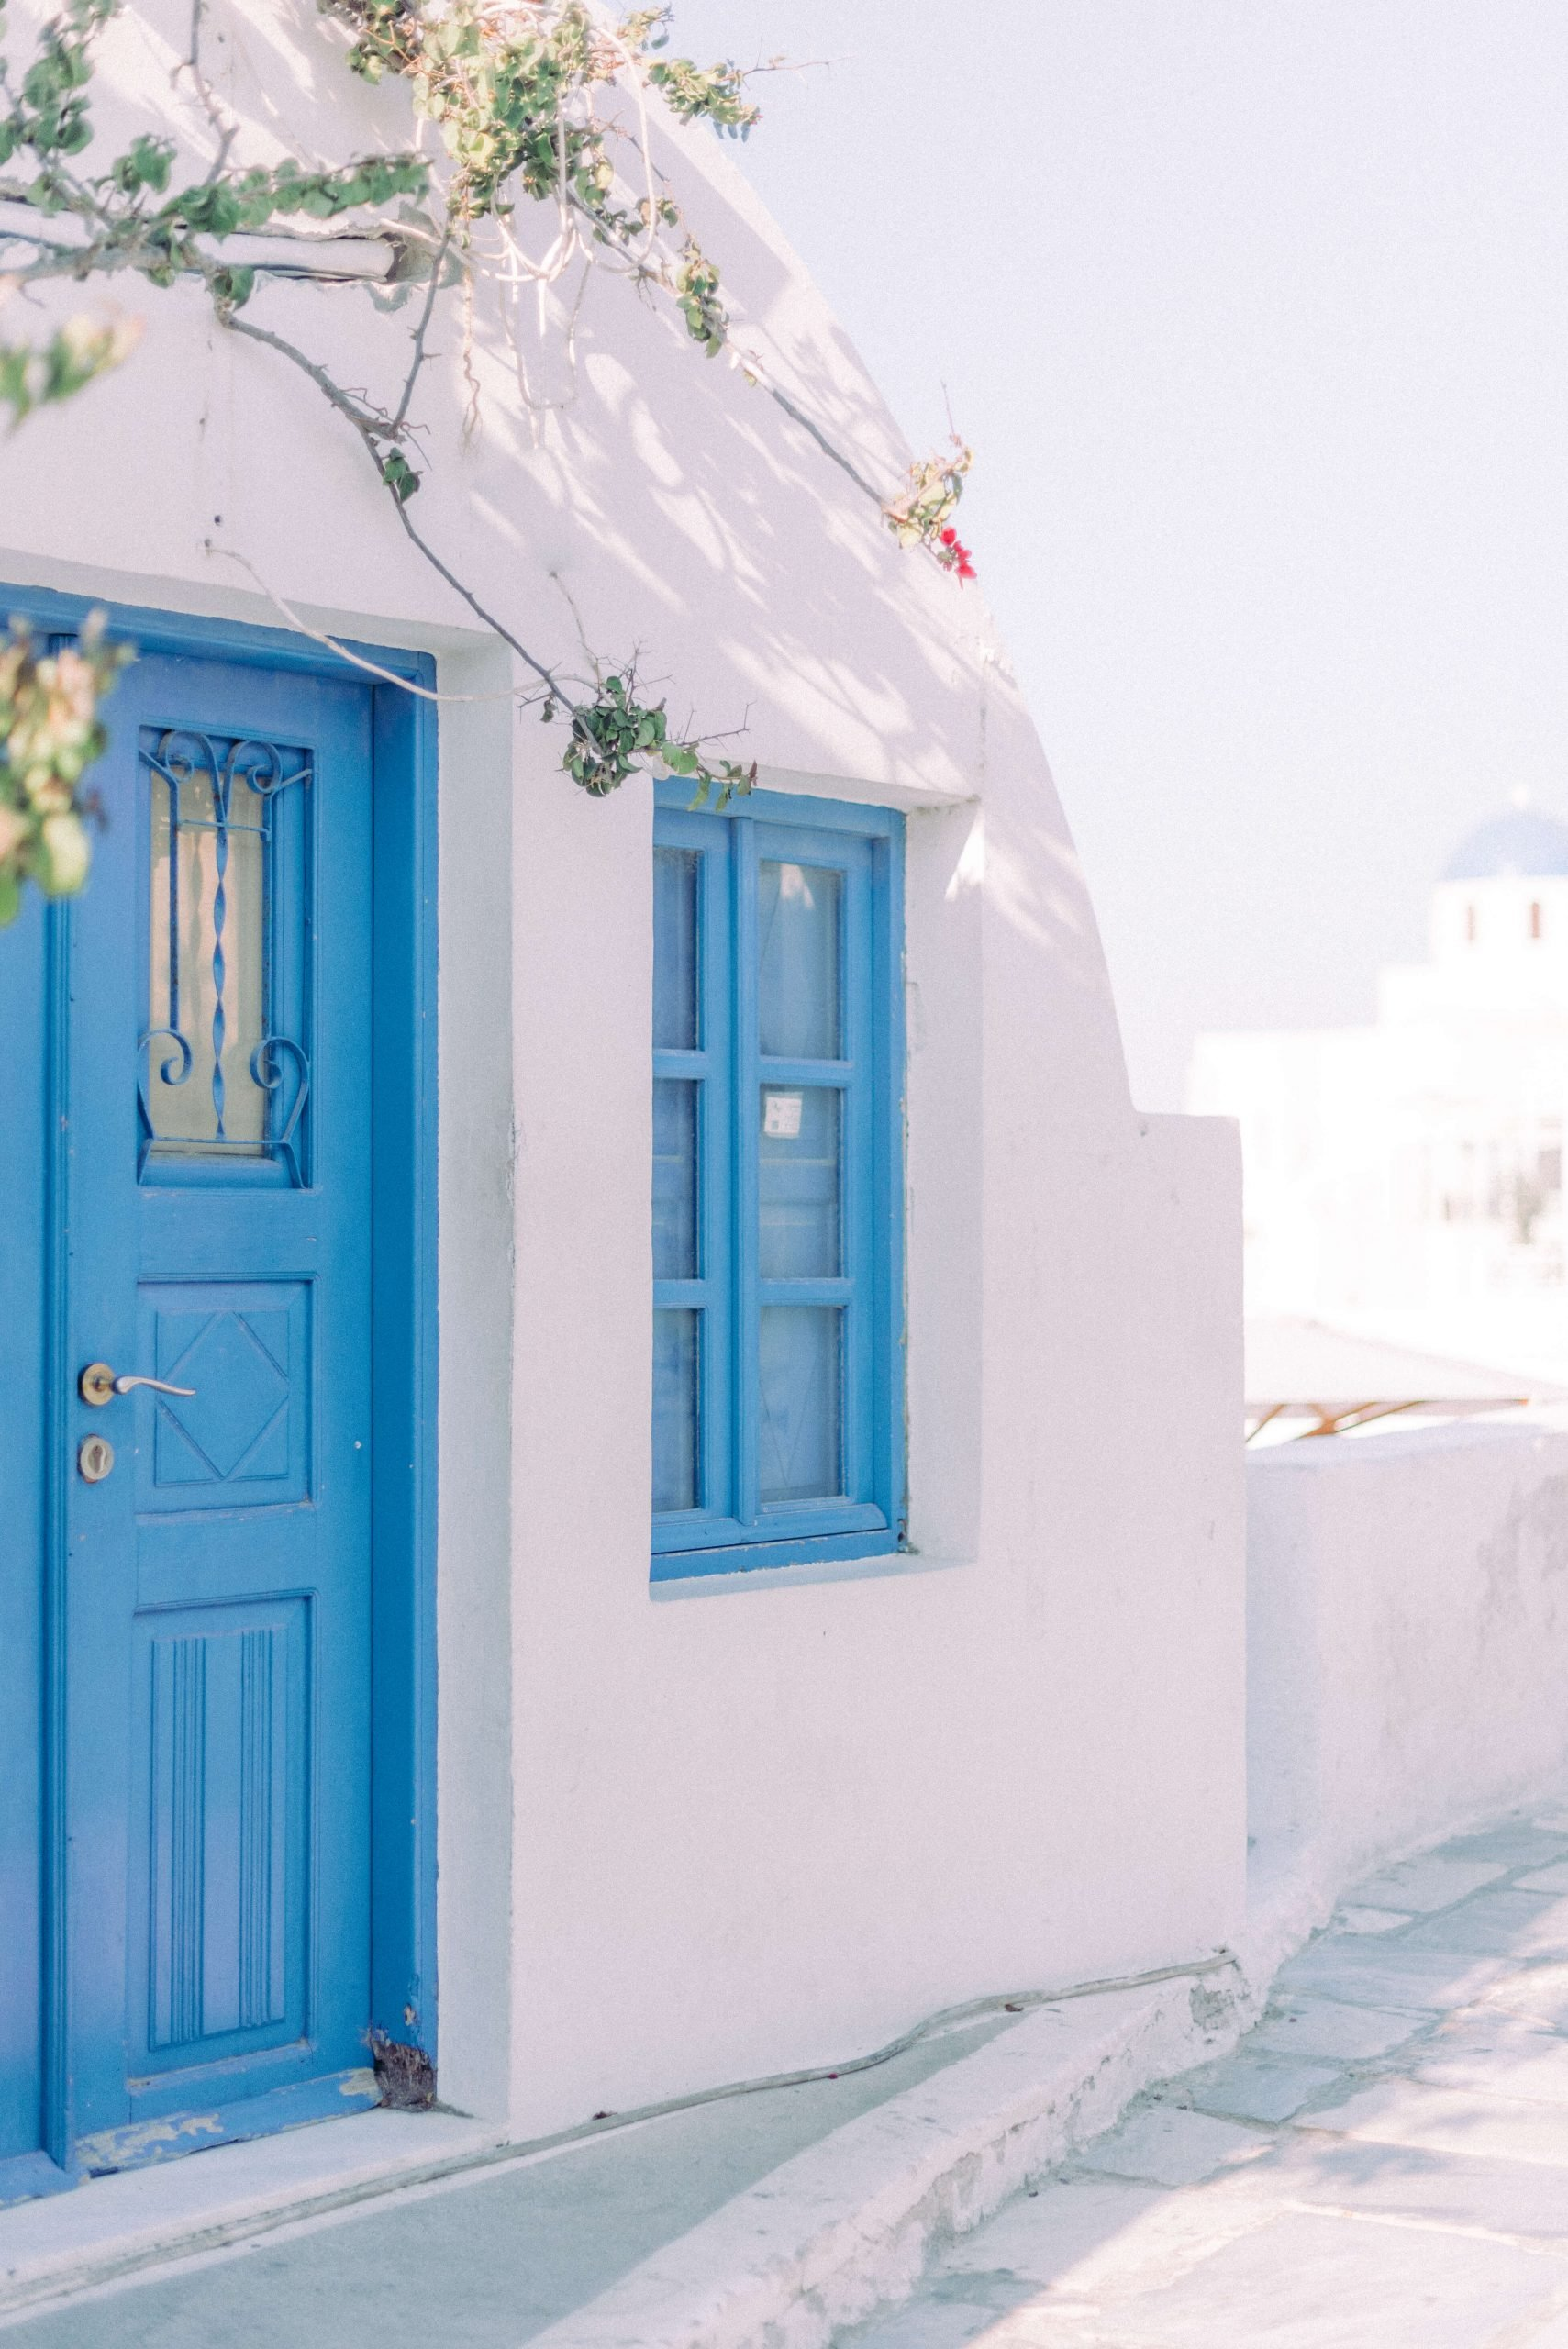 blue doors and white walls, typical Greek houses and buildings, perfect for destination wedding location. Photography by Cristina Ilao www.cristinailao.com